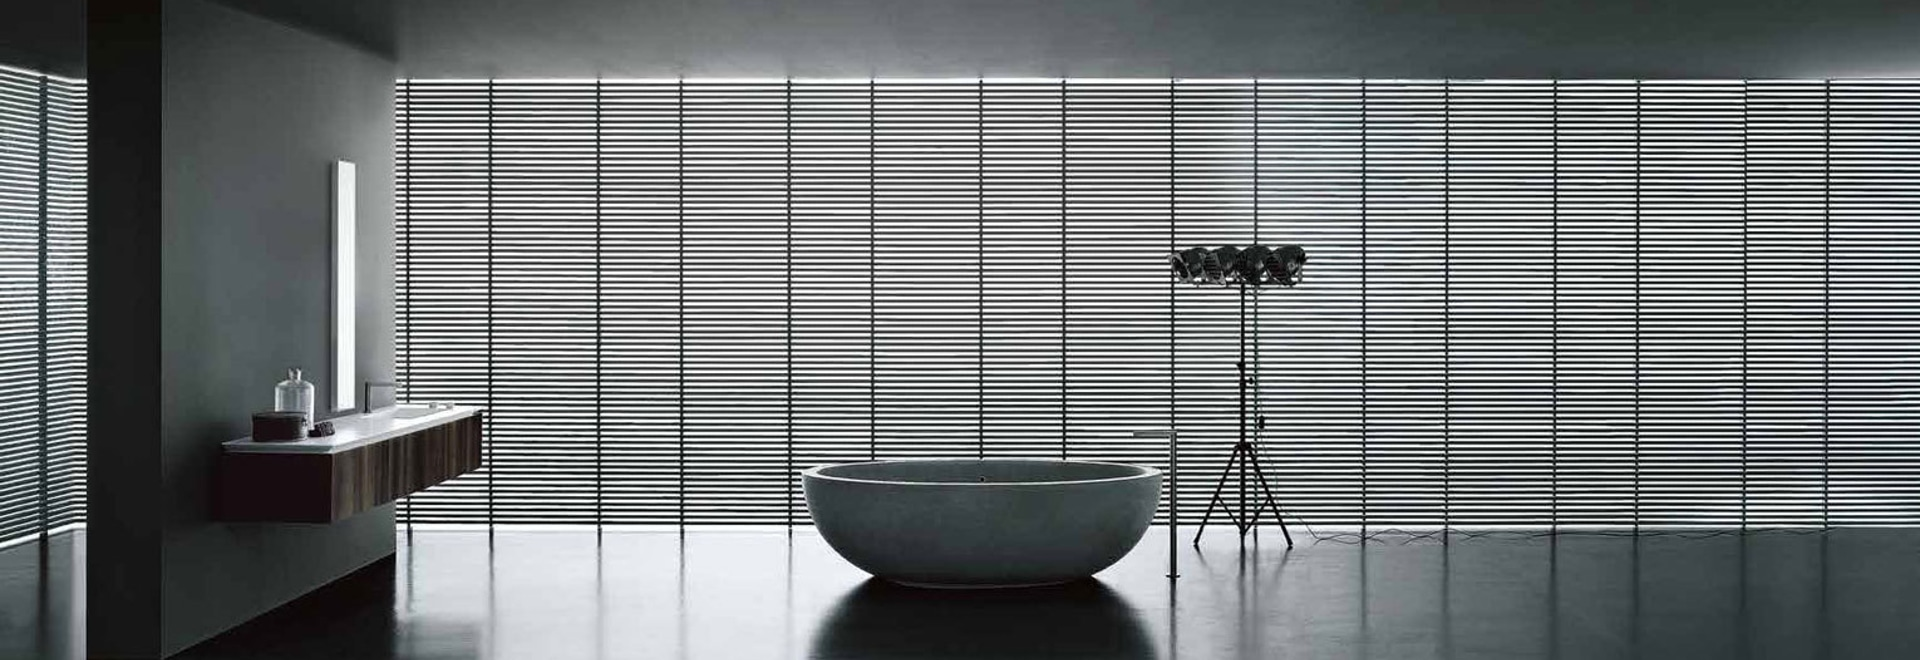 Your Bathroom Center Stage: Preparing for a New Age